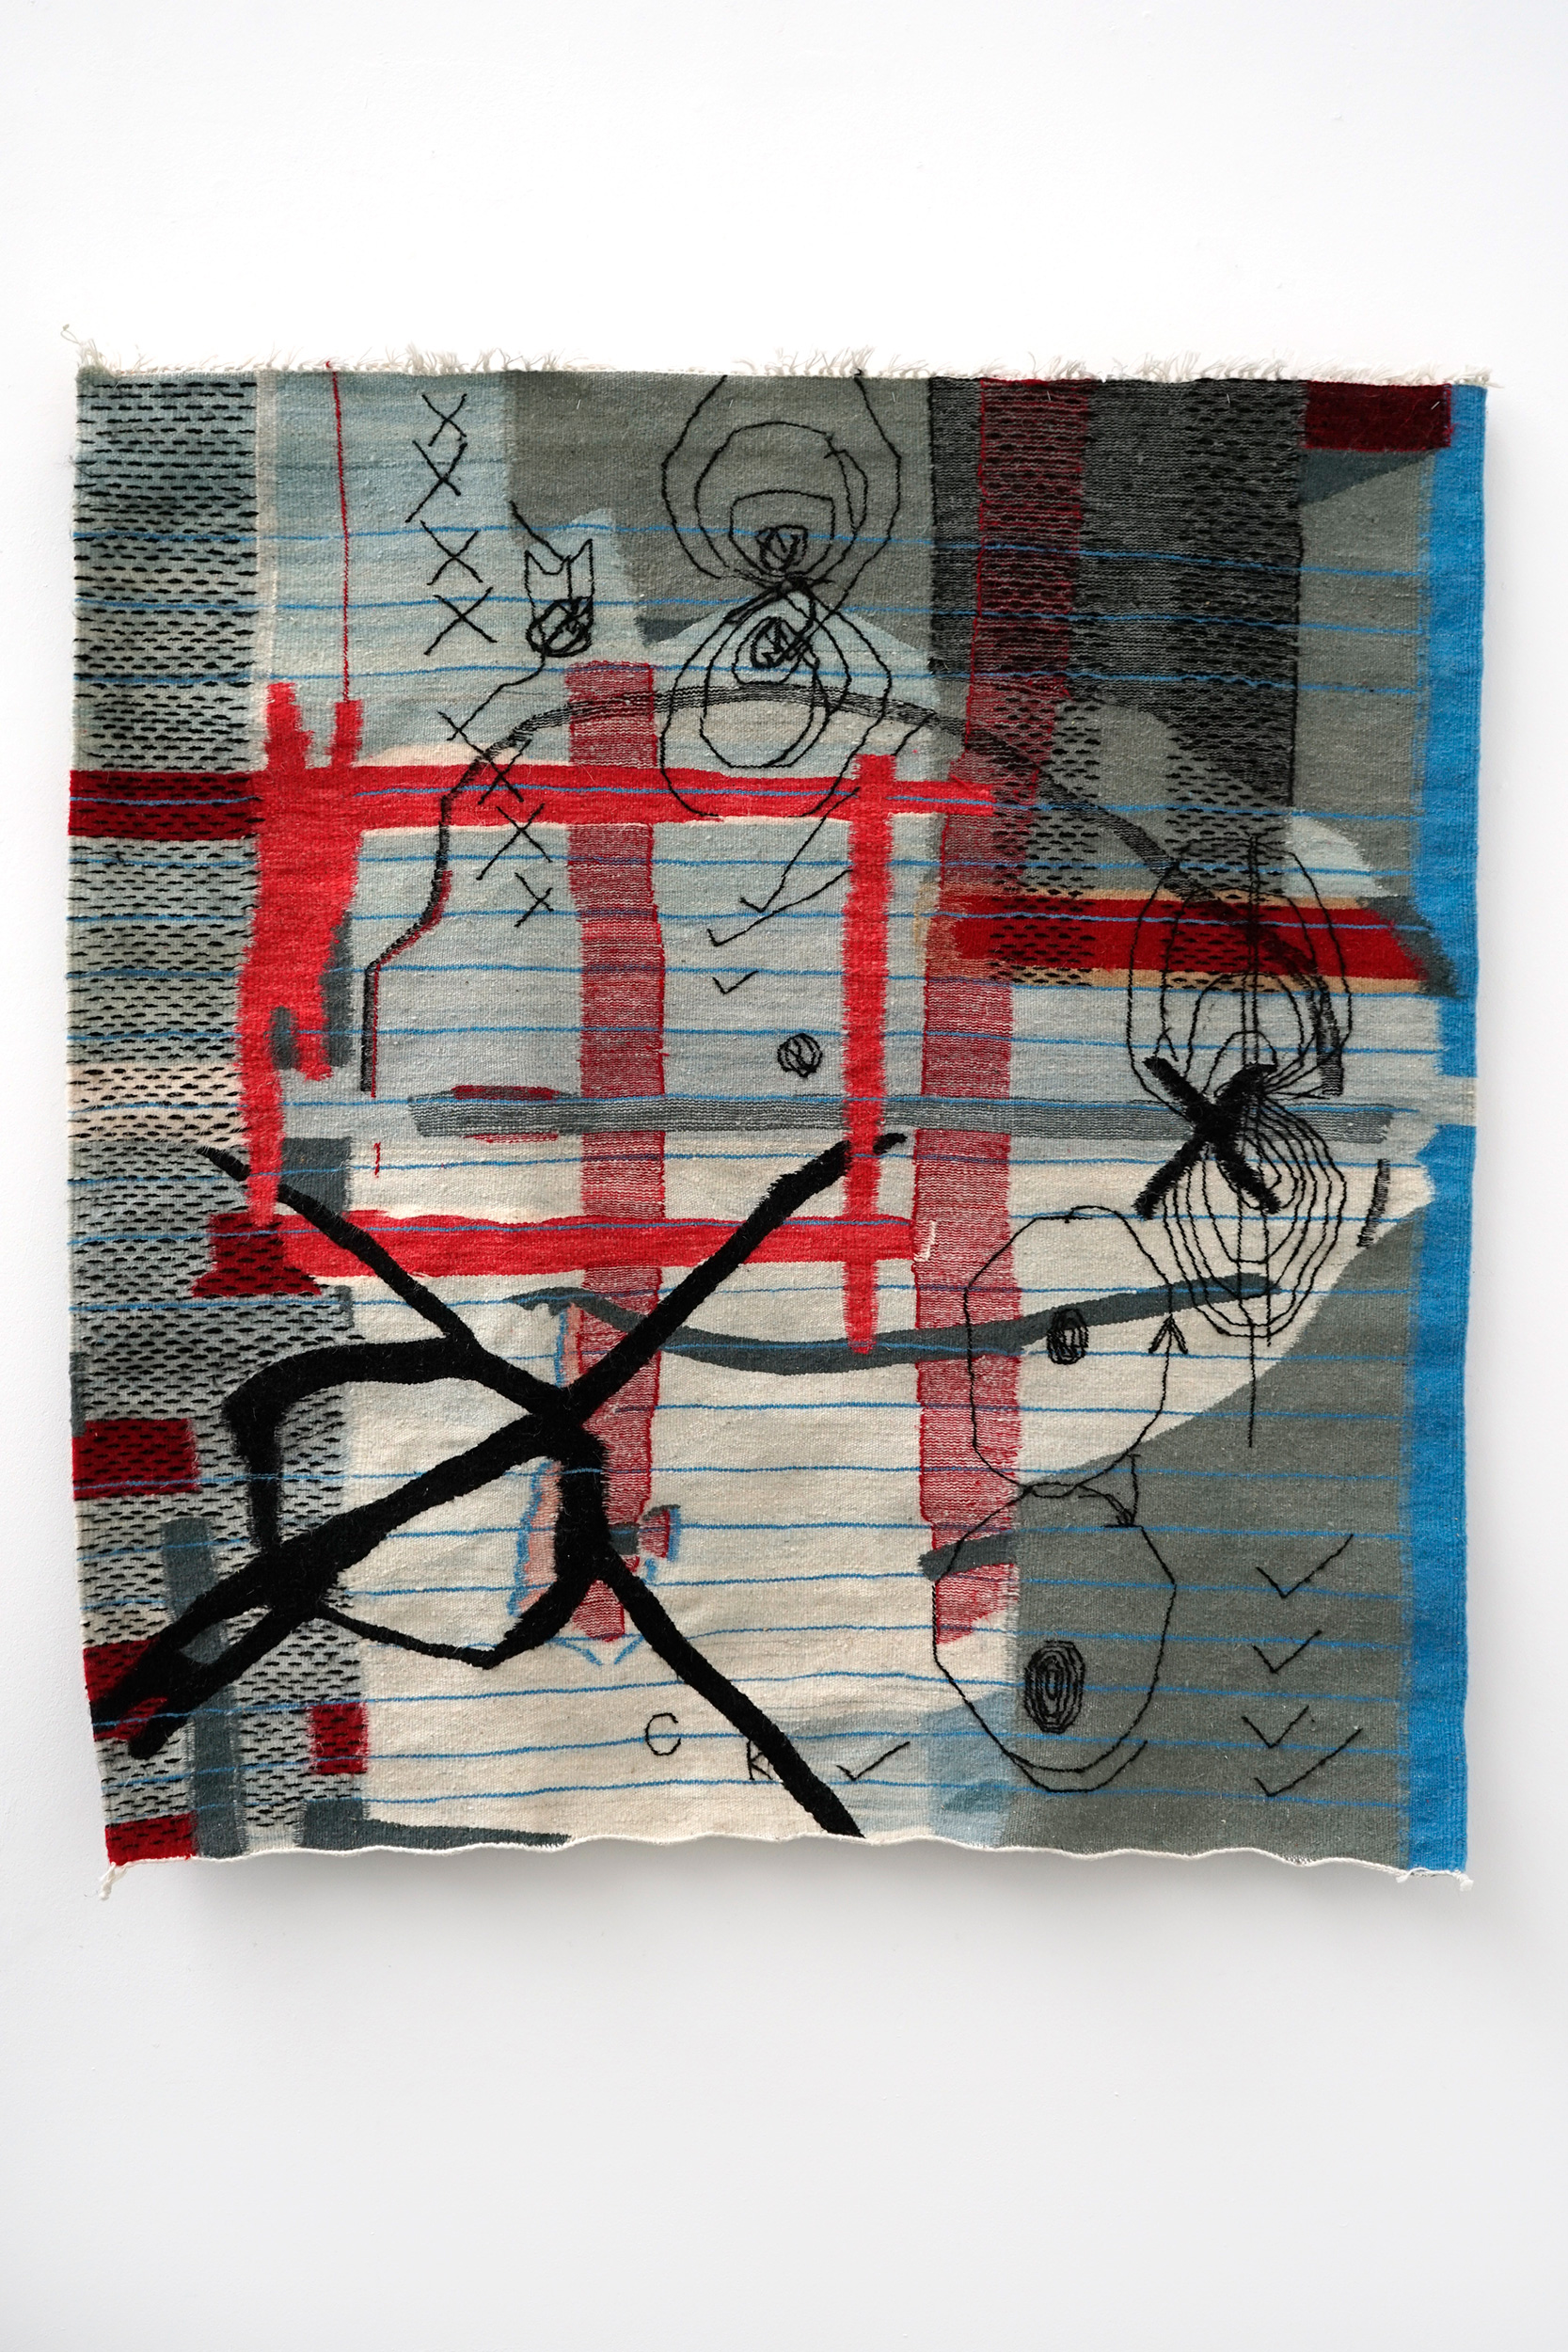 """Galerie Barbara Thumm \ Sarah Entwistle: """"All this is subject to revision"""" 2021 (SEn-21-003) \ All this is subject to revision (2021)"""